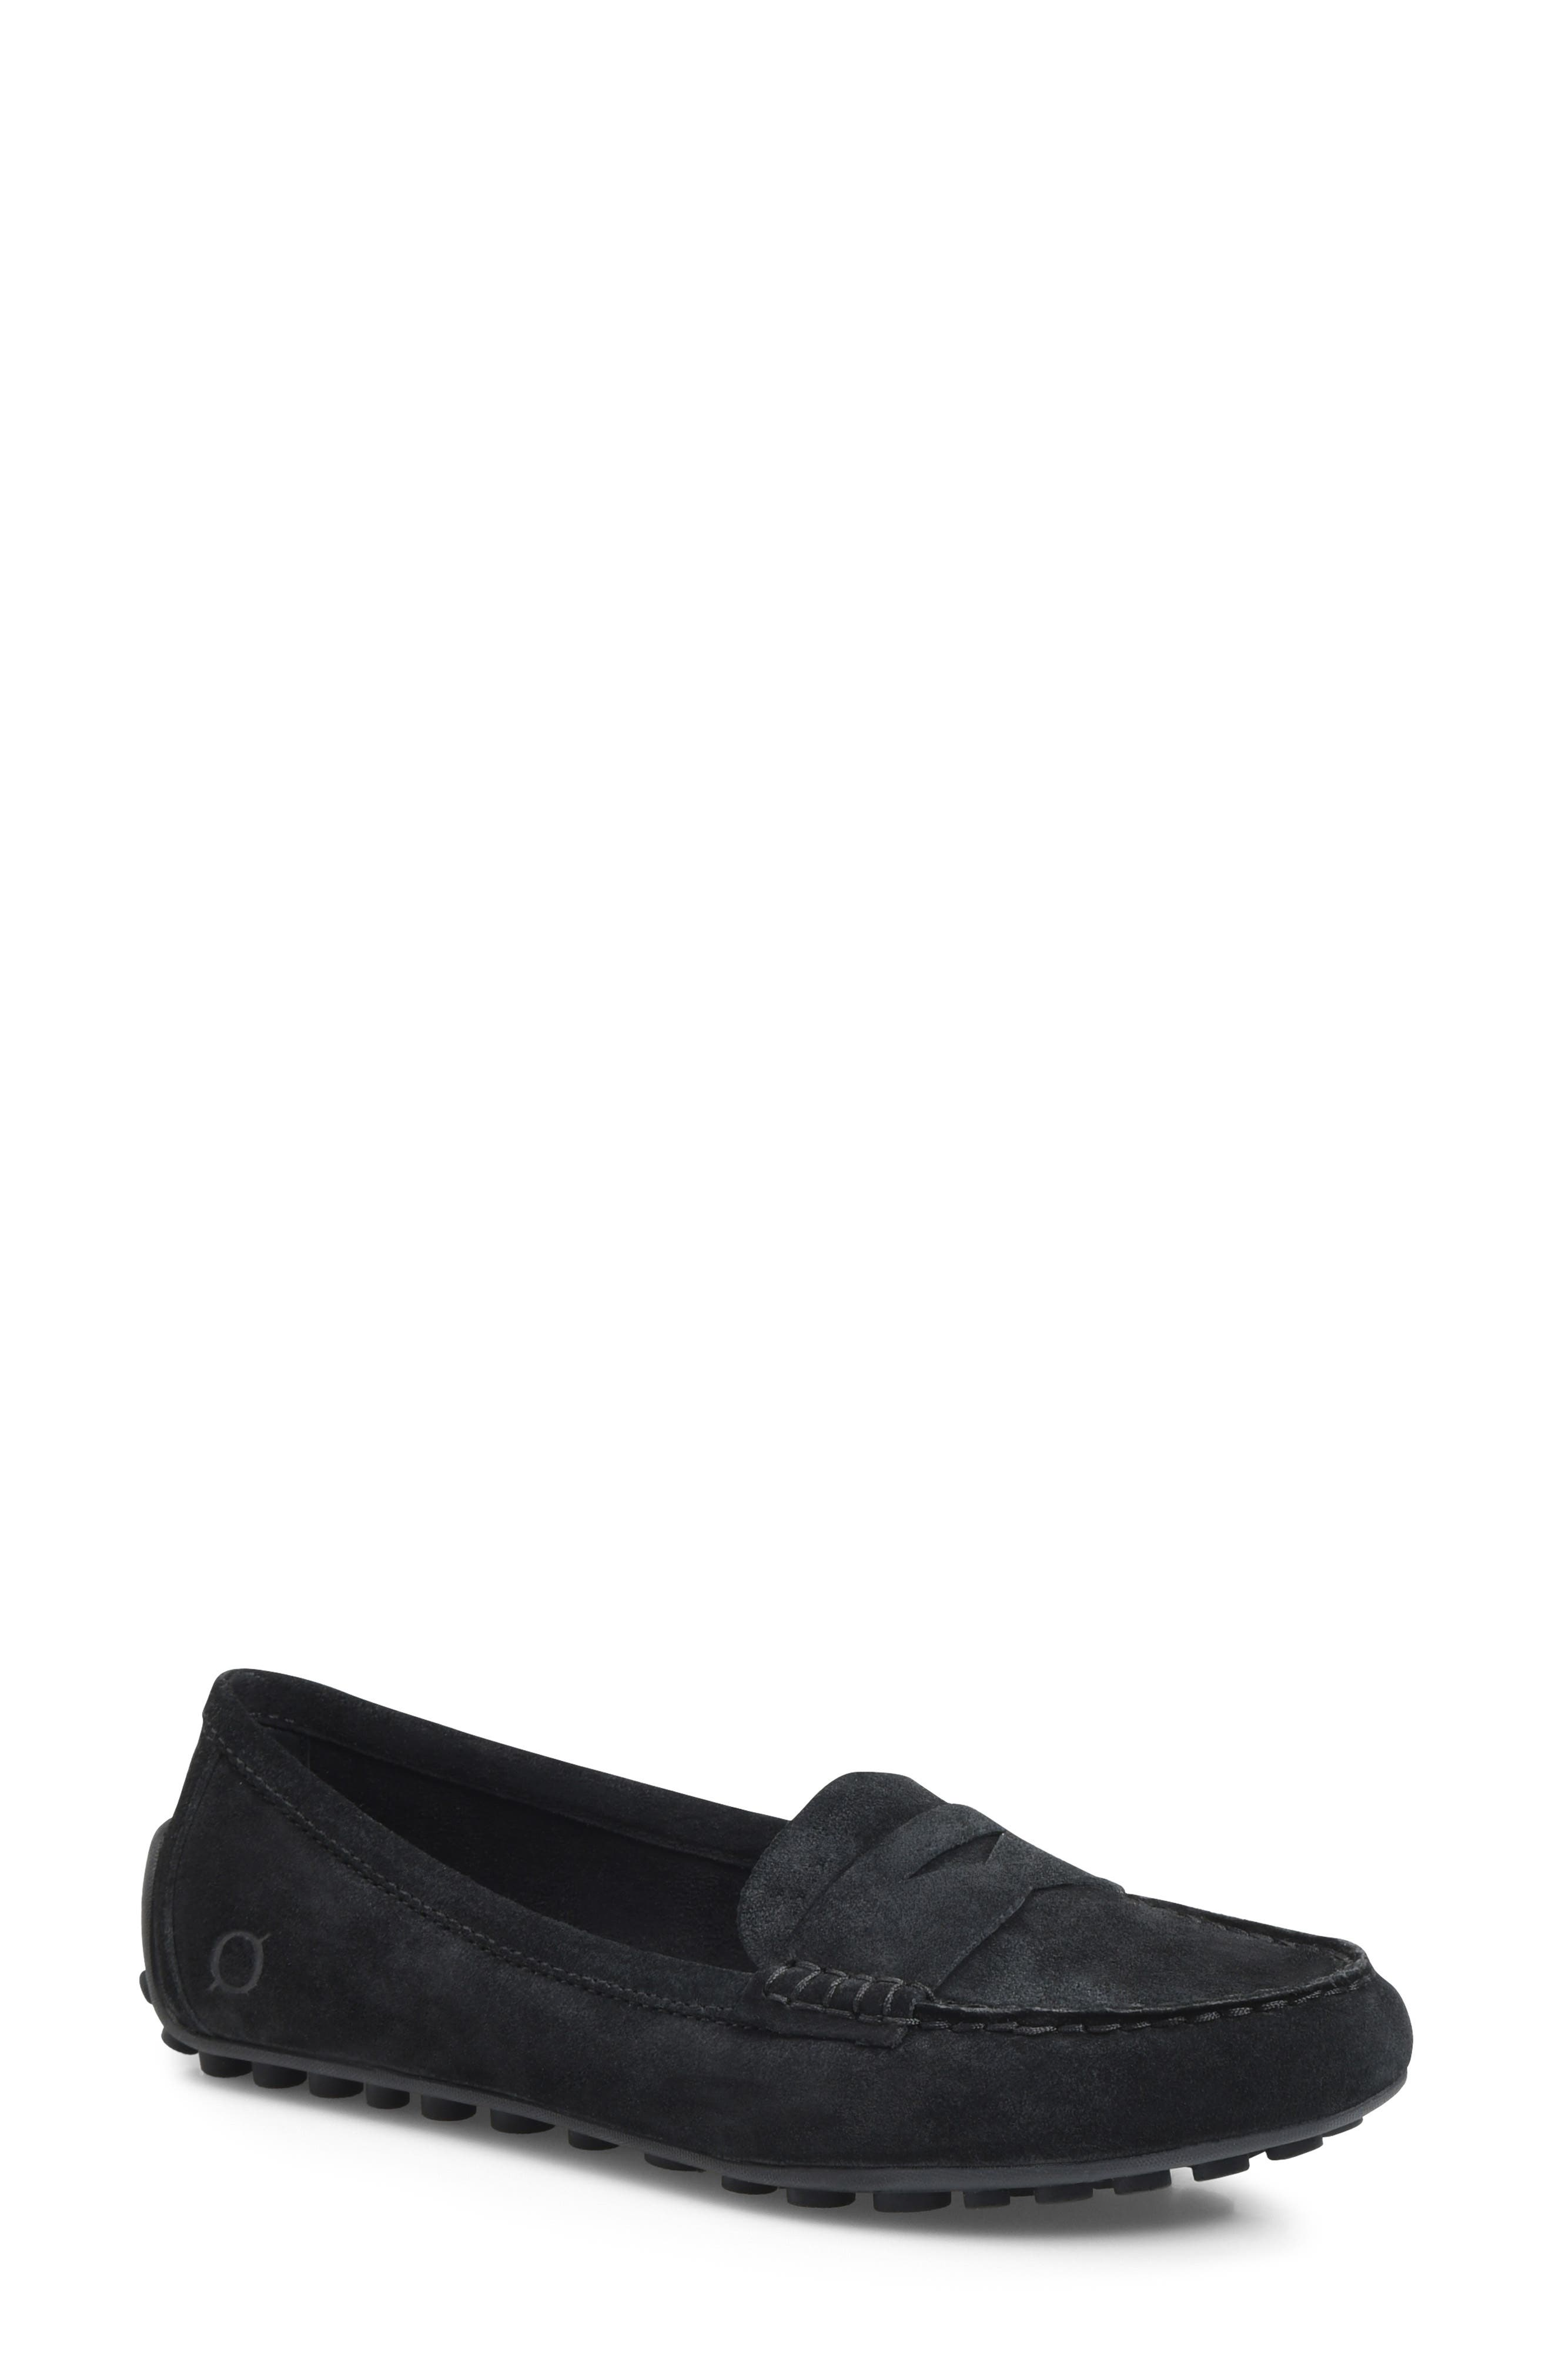 Malena Penny Loafer,                             Main thumbnail 1, color,                             BLACK SUEDE